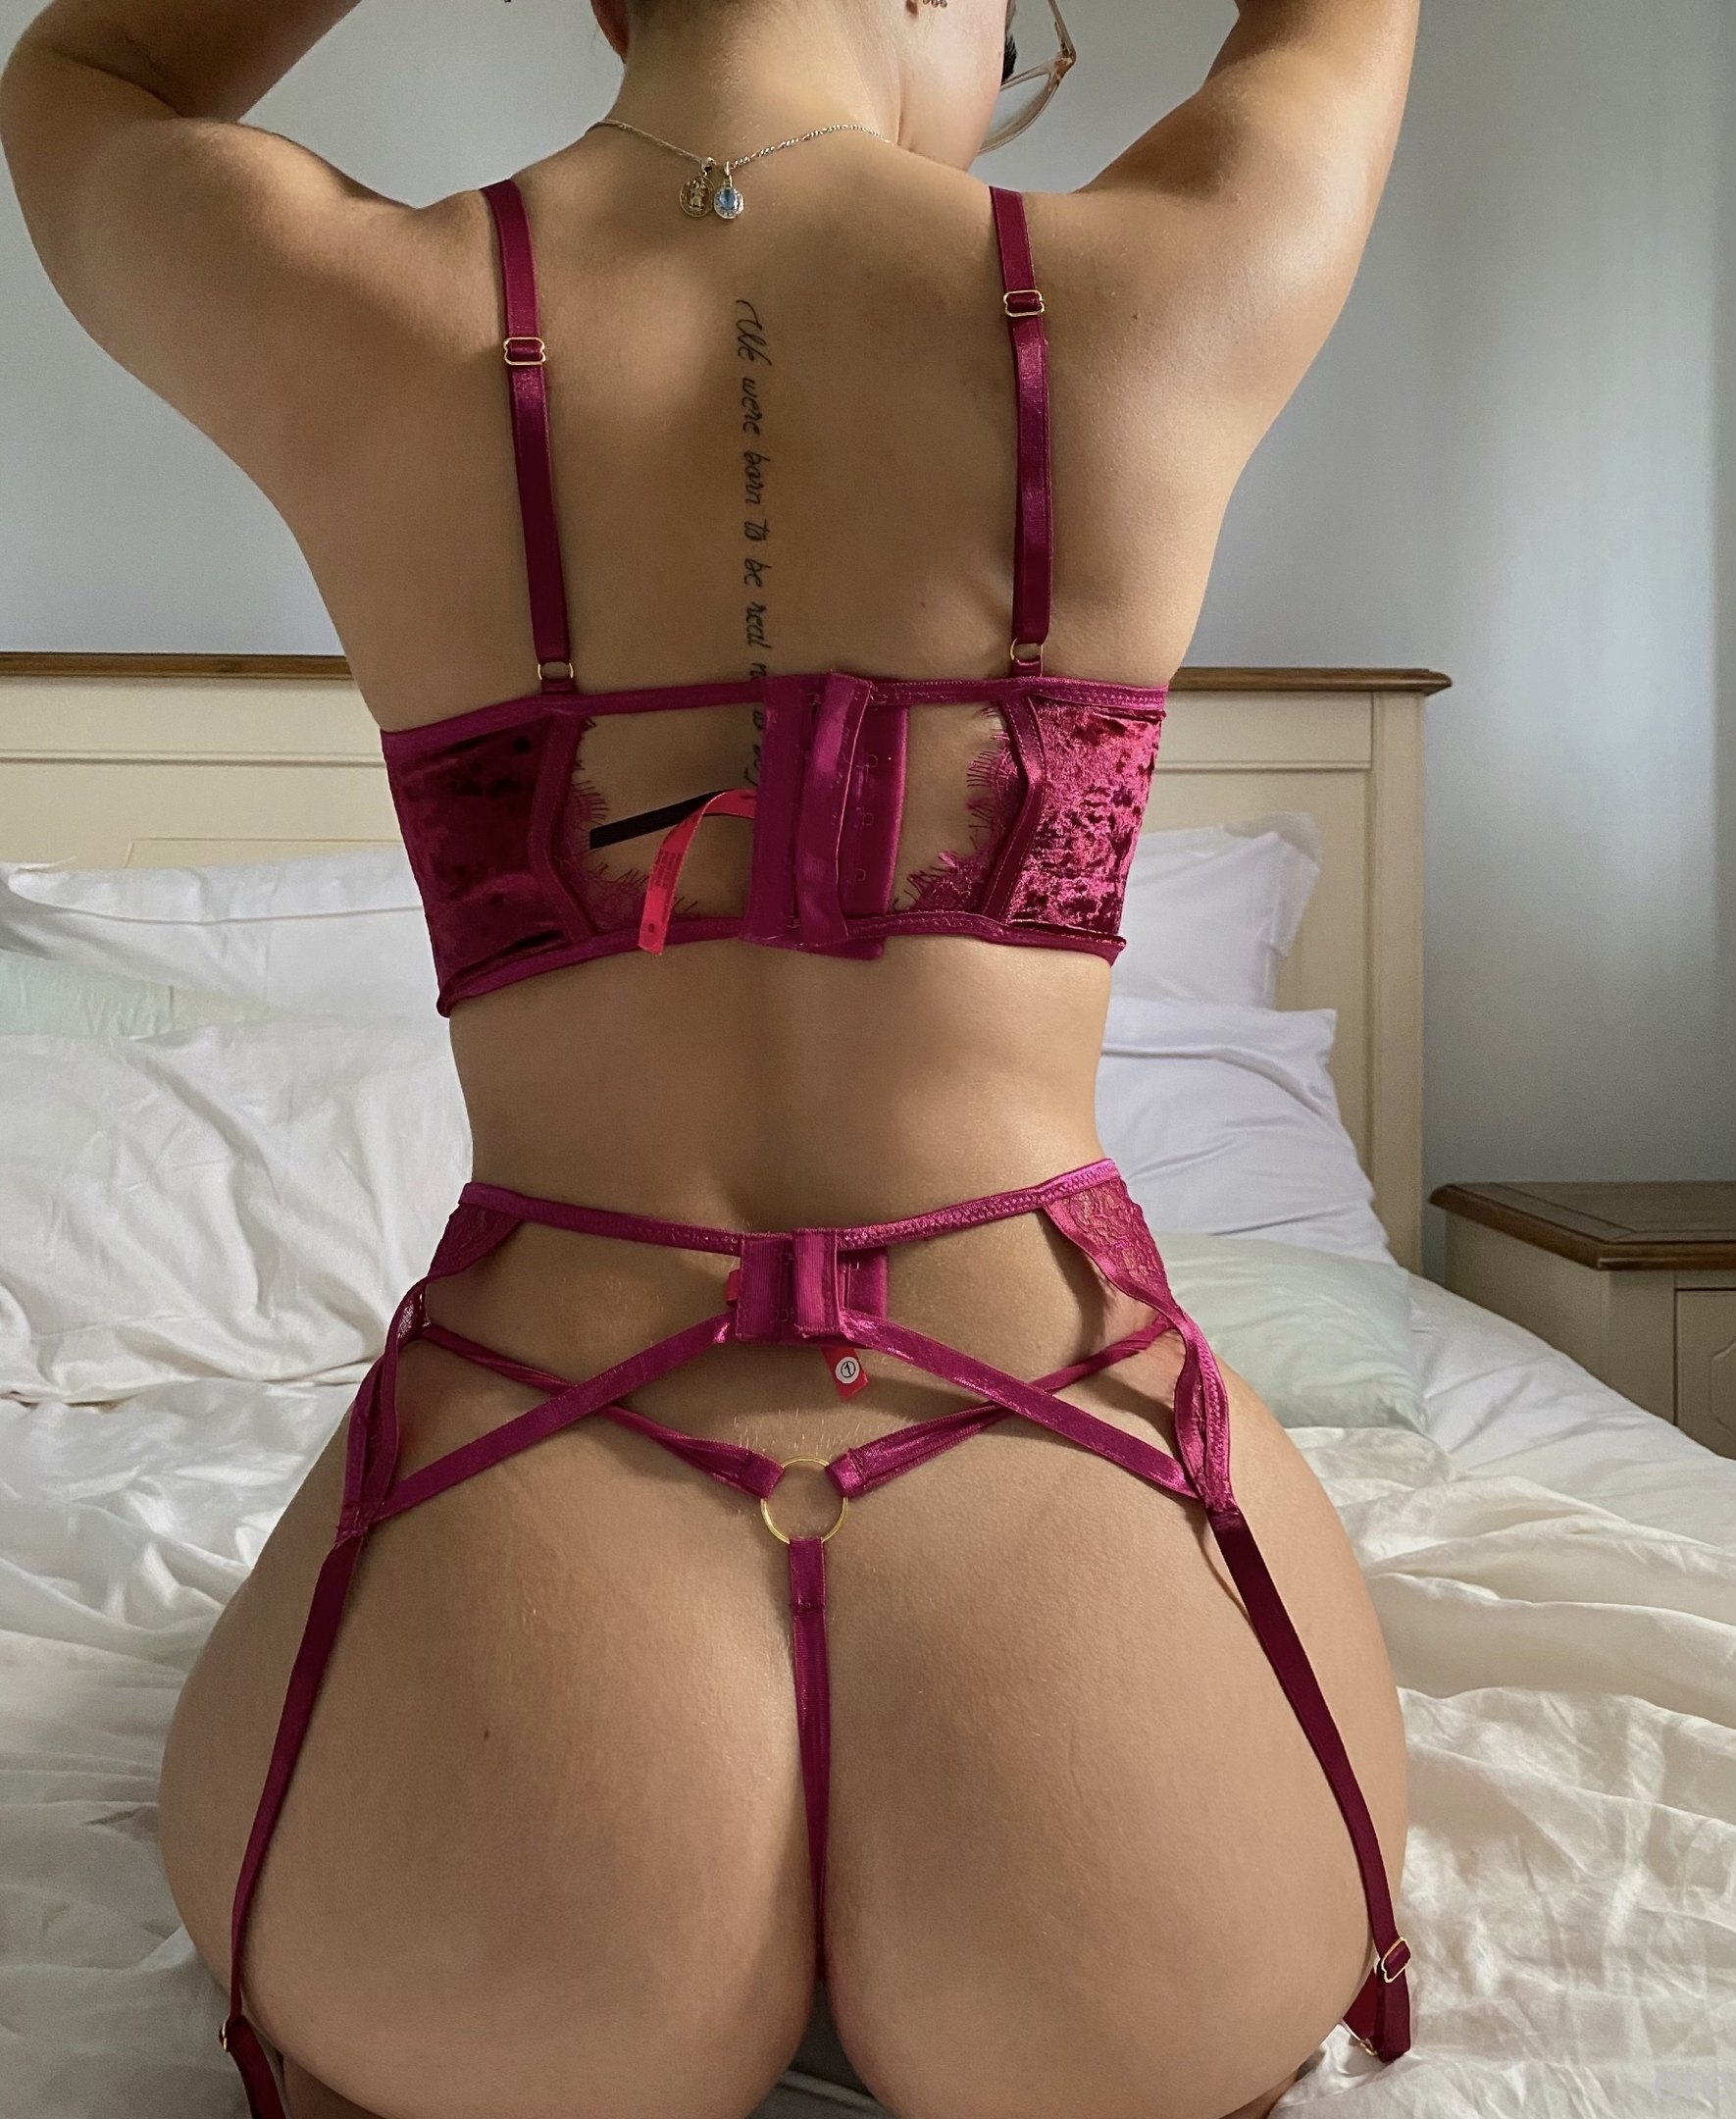 Lilith Cavaliere, Lilithcavalierex, Onlyfans 0014